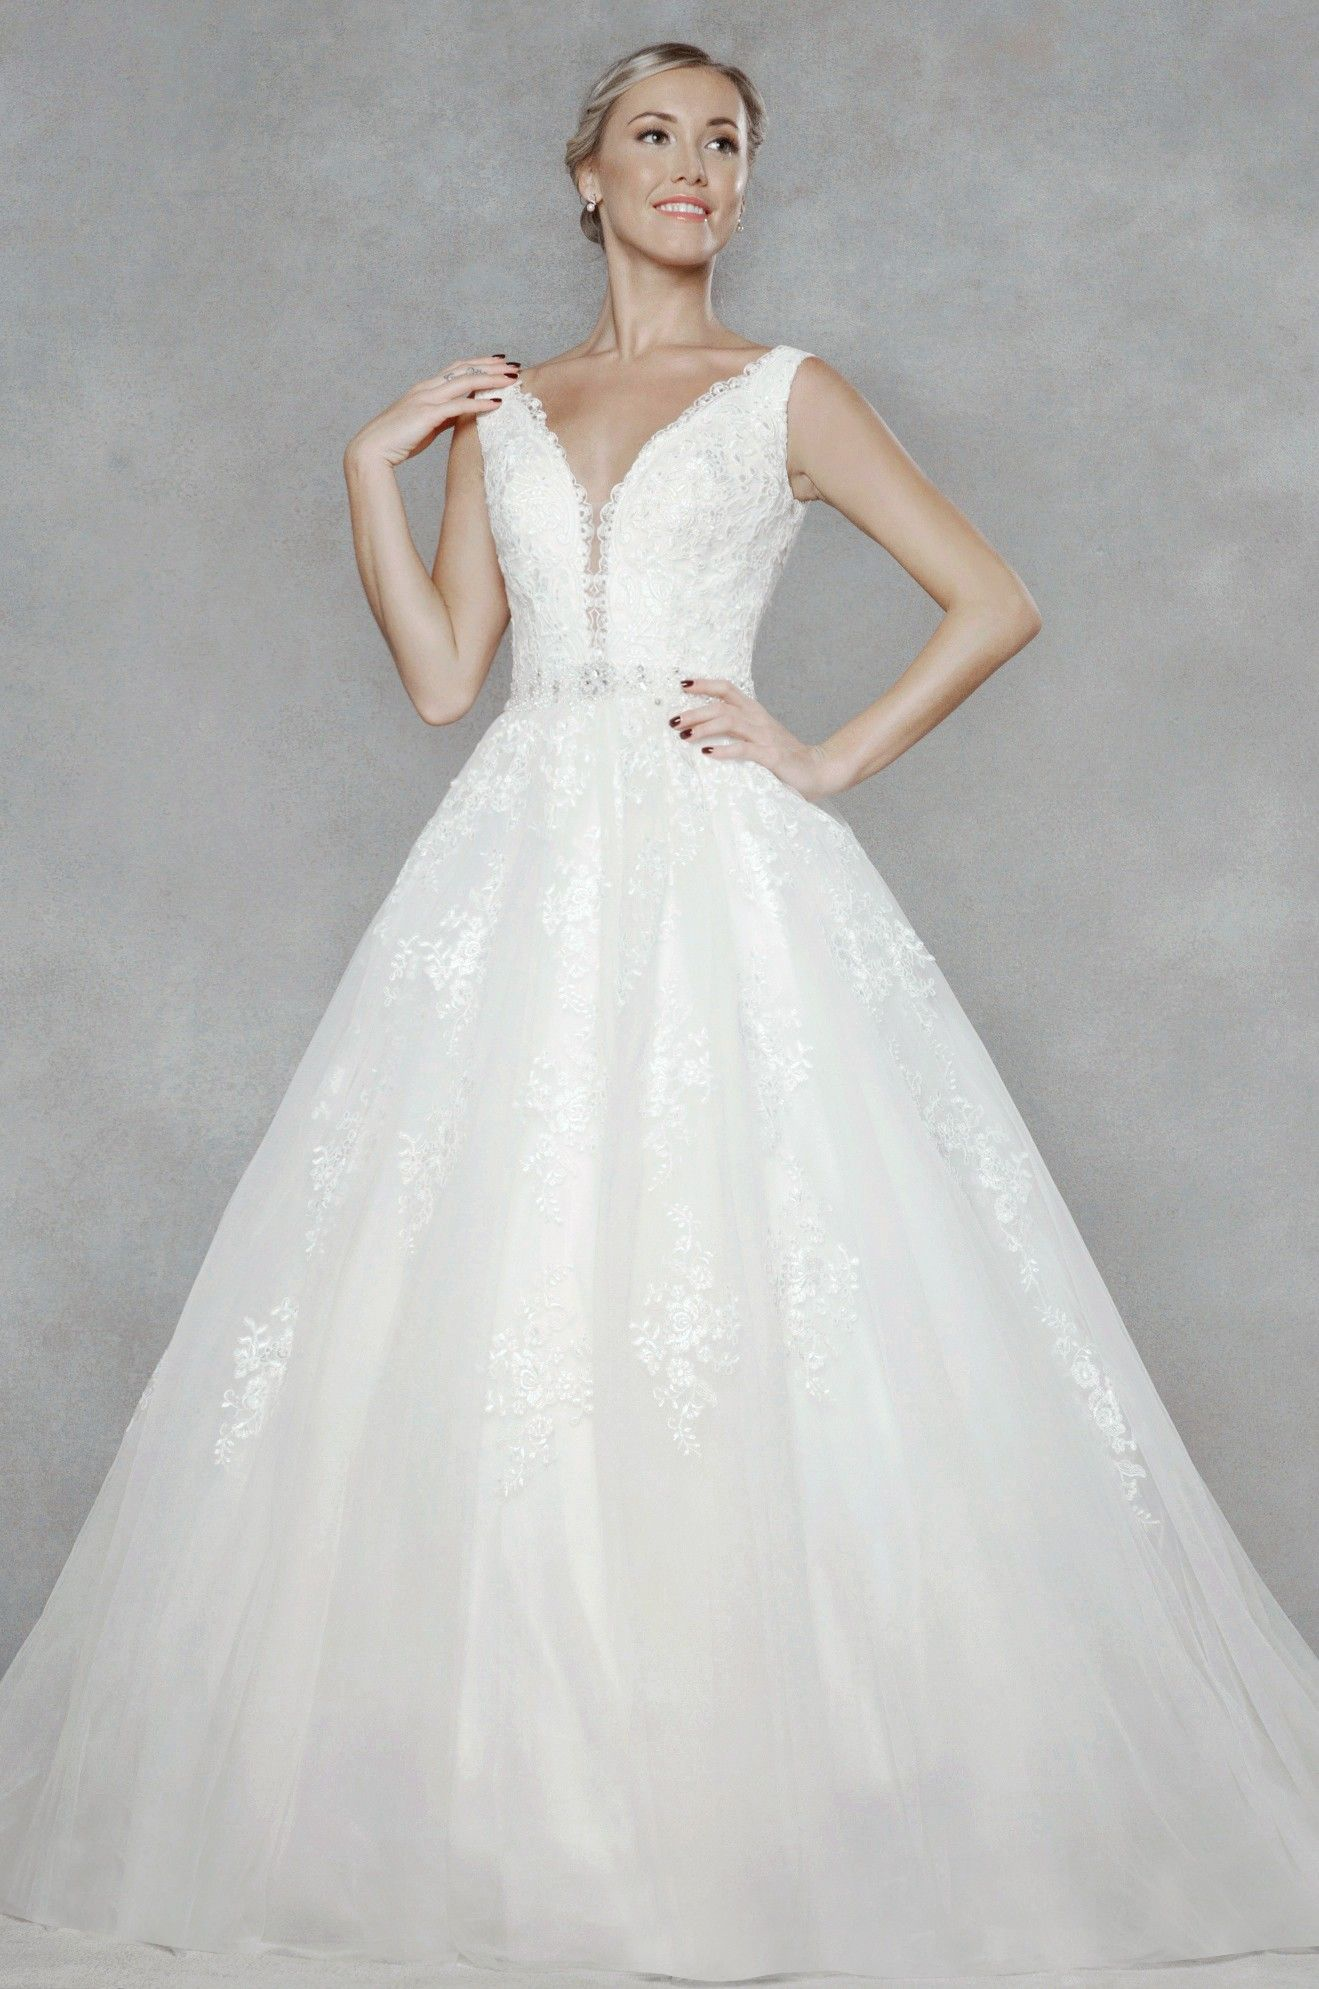 elegant lace appliques adorn the tulle in this stunning